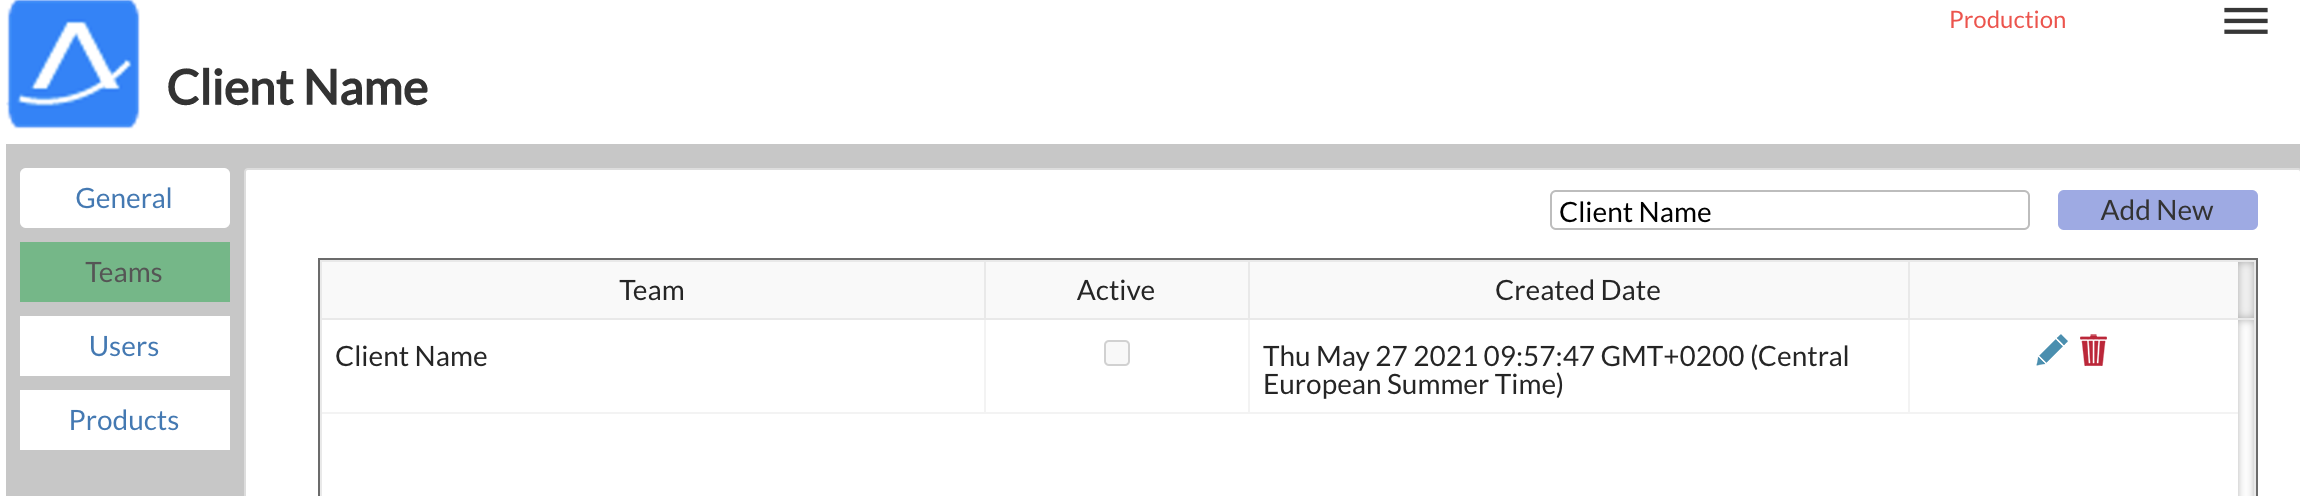 Production  Client Name  General  Teams  Users  Products  Team  Client Name  Active  Client Name  Created Date  Thu May 27 GMT+0200 (Central  European Summer Time)